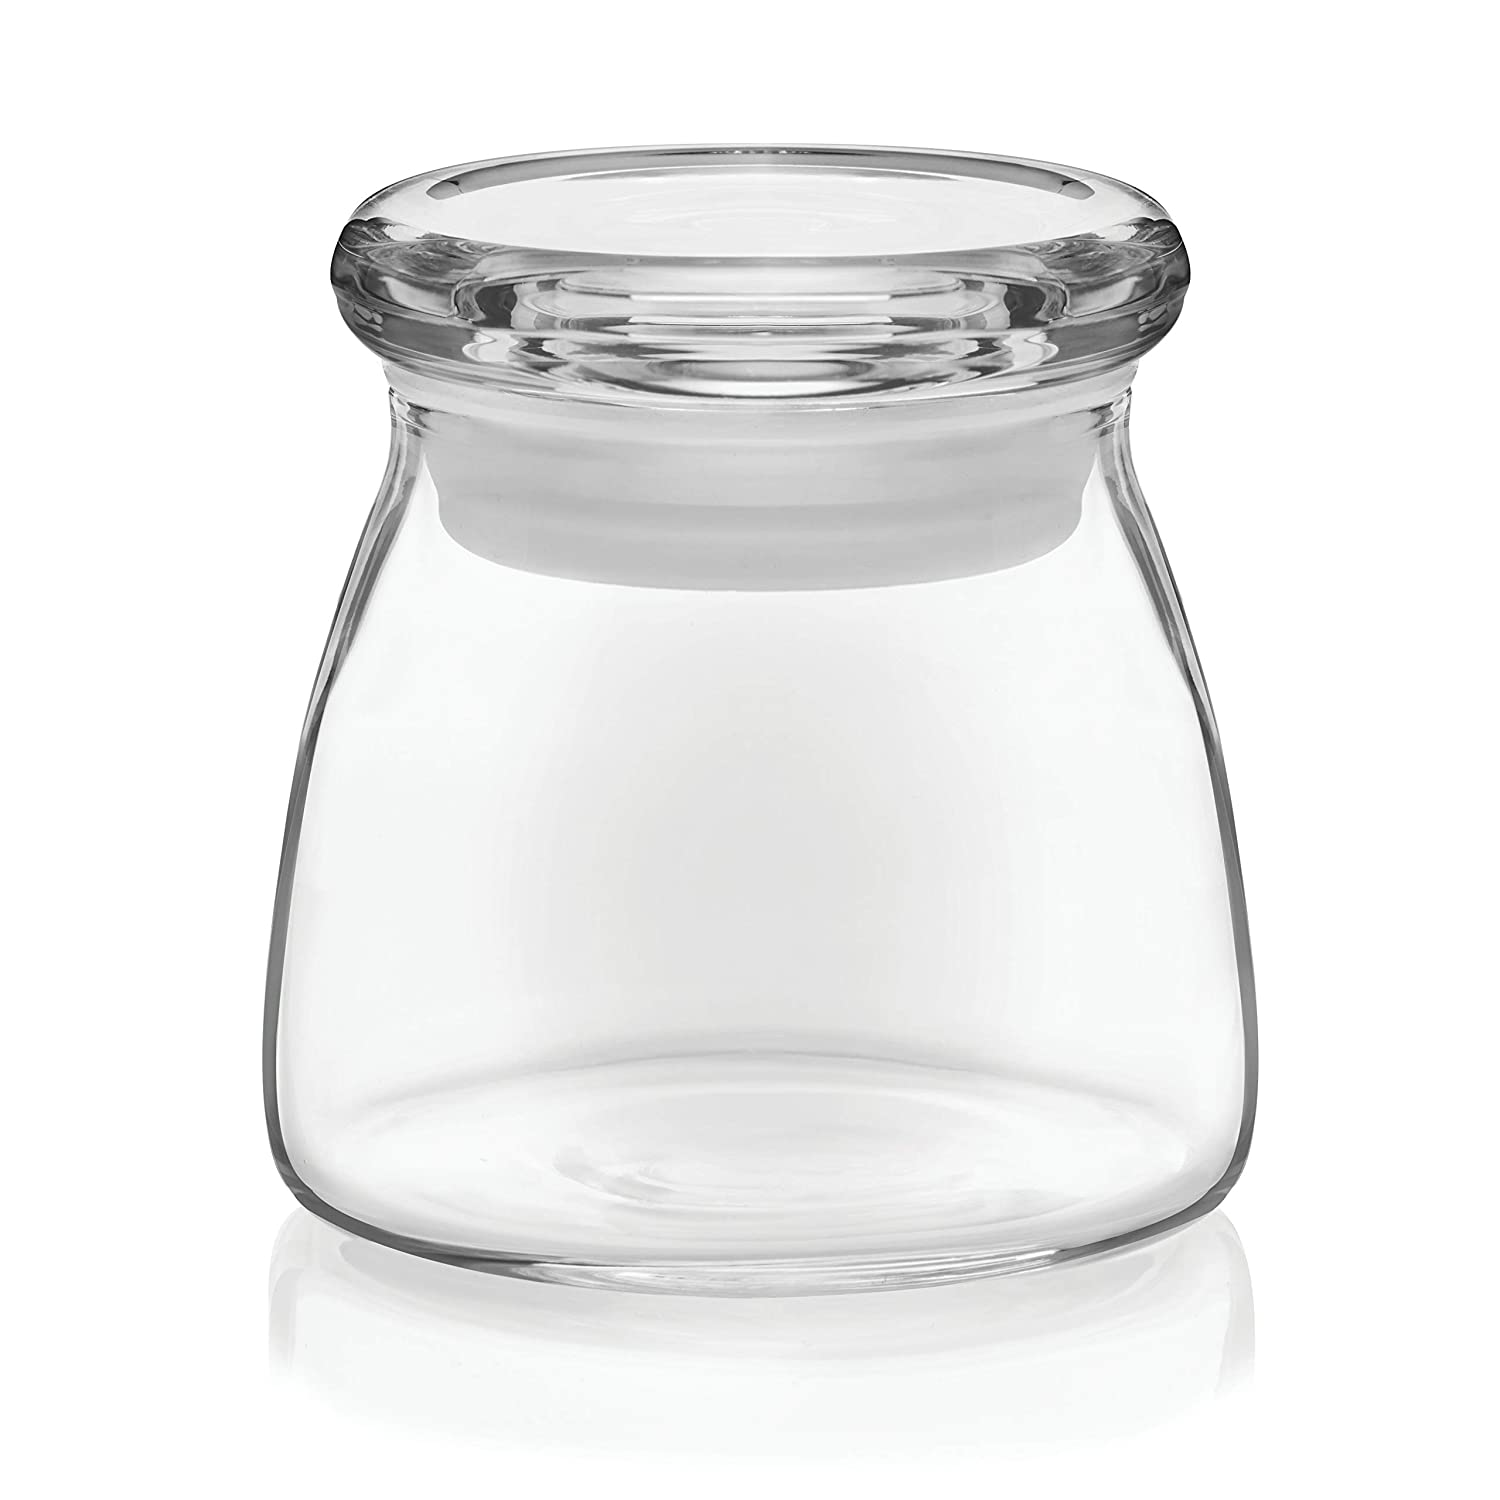 Libbey 71355 Glass Jar With Flat Lid Set Of 12 1 Toples Multicolor Cookie Jars Kitchen Dining